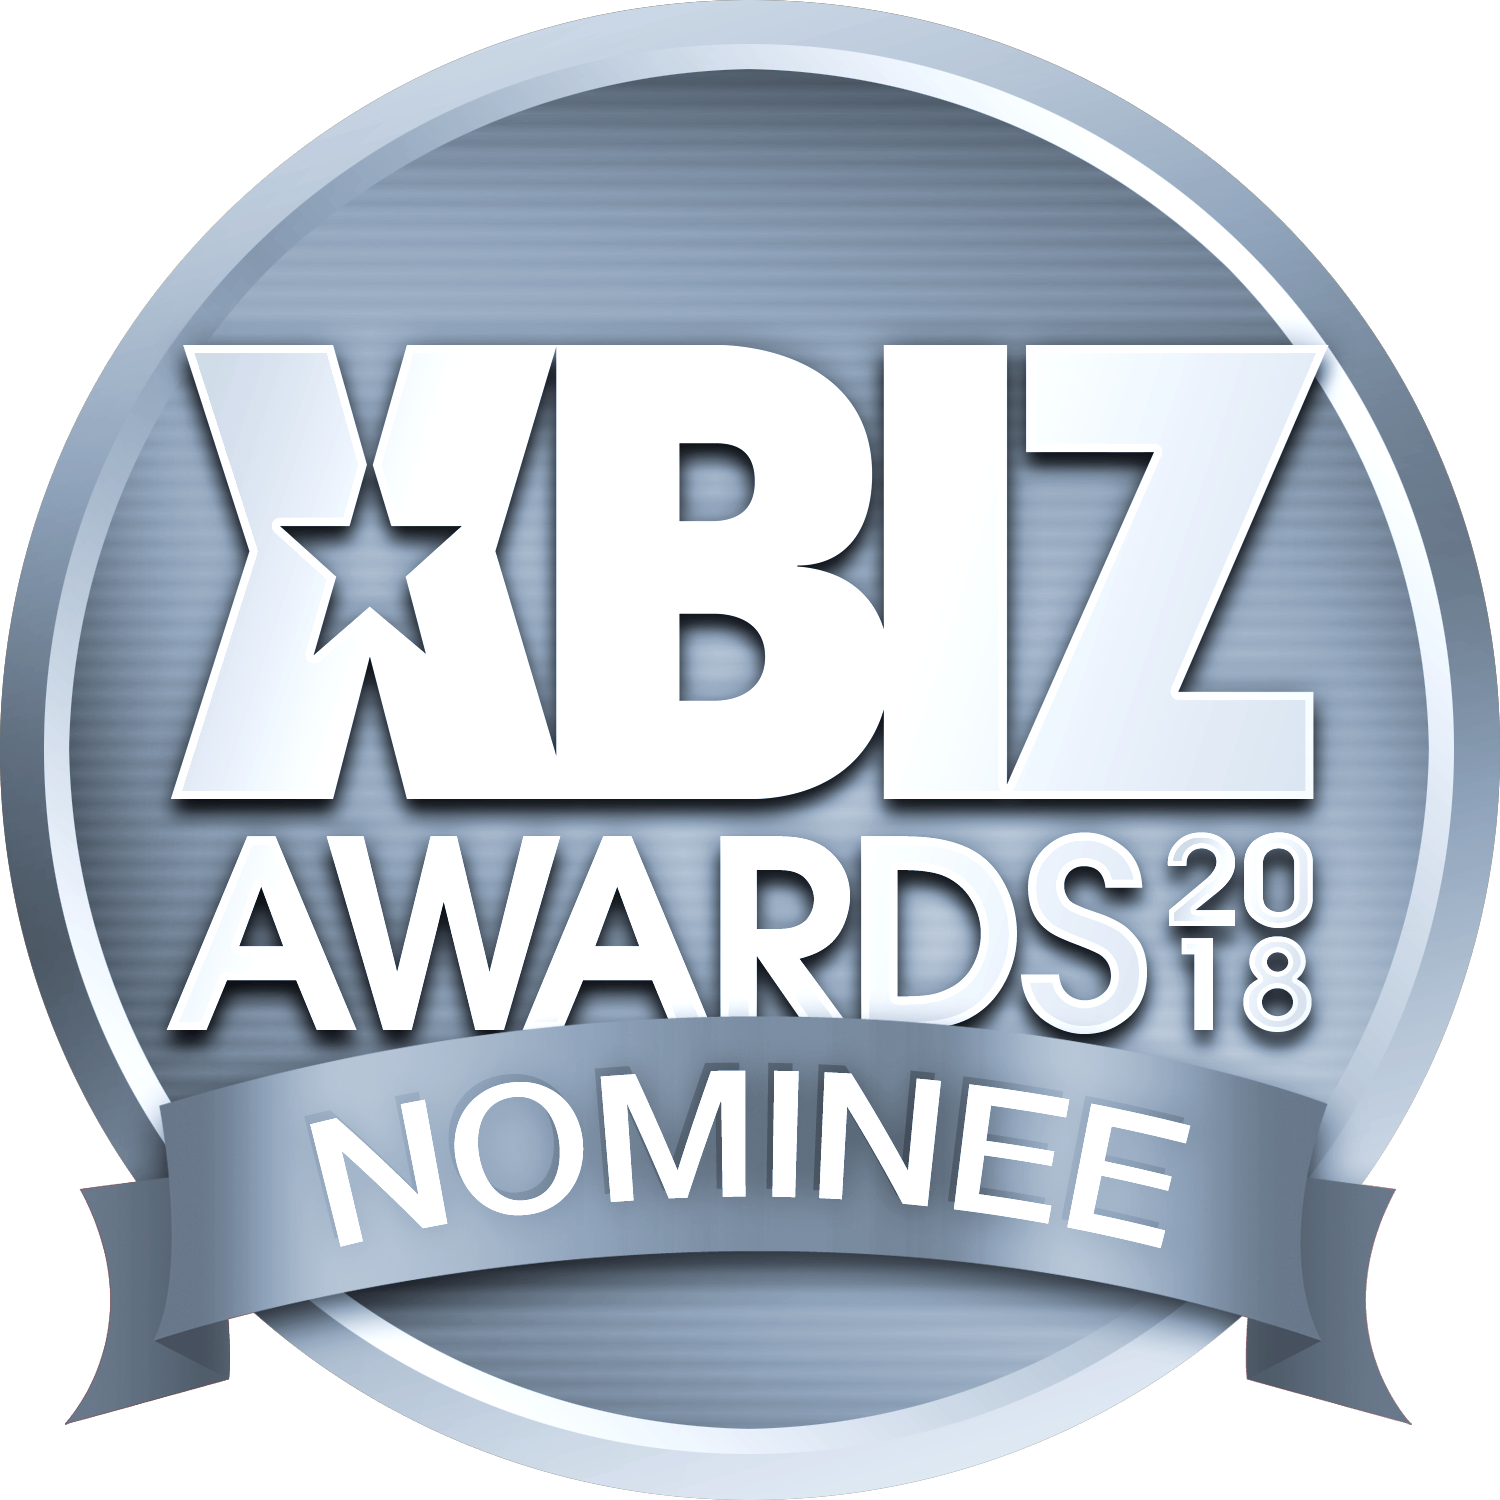 Nalpac Nominated For 2 XBIZ Awards!